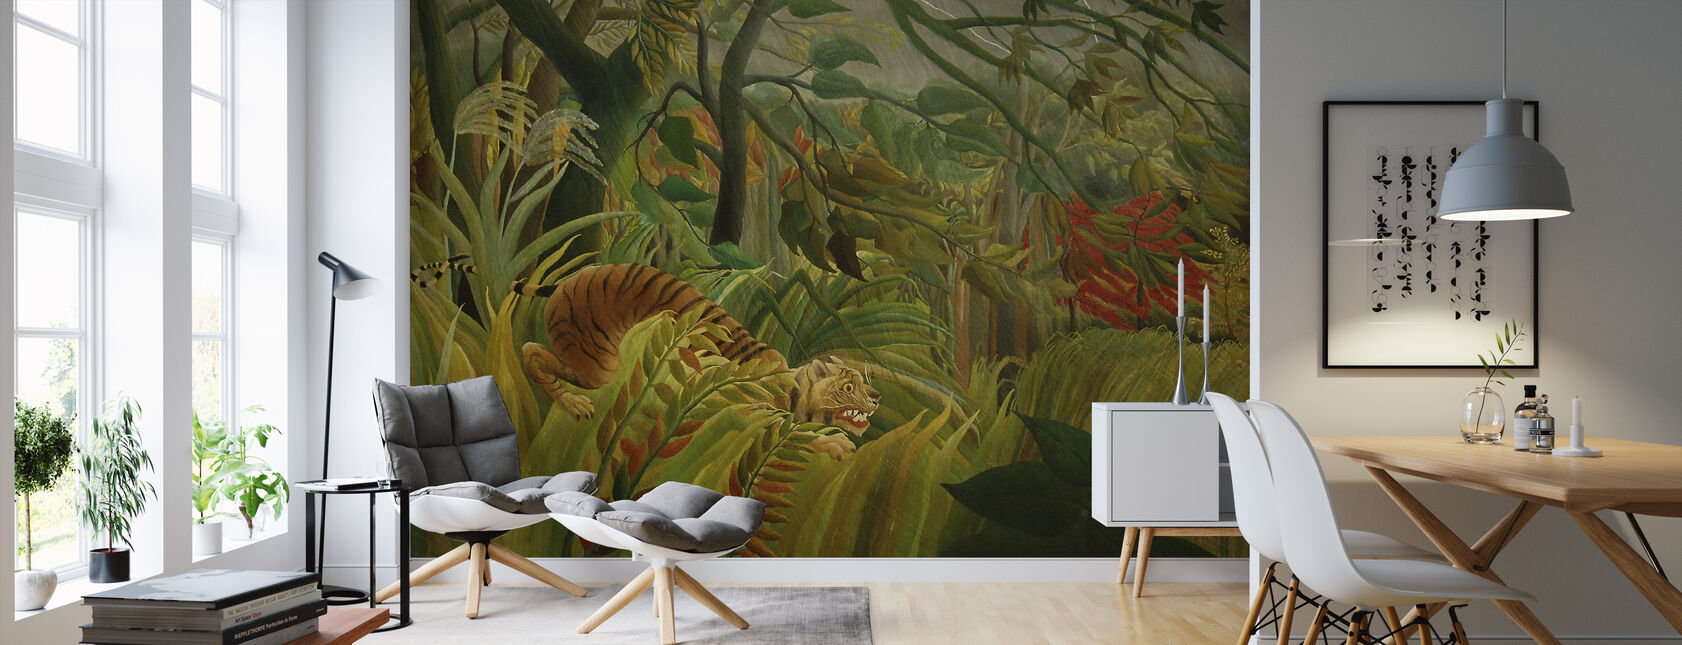 Tiger in a Tropical Storm, Henri Rousseau - Wallpaper - Living Room